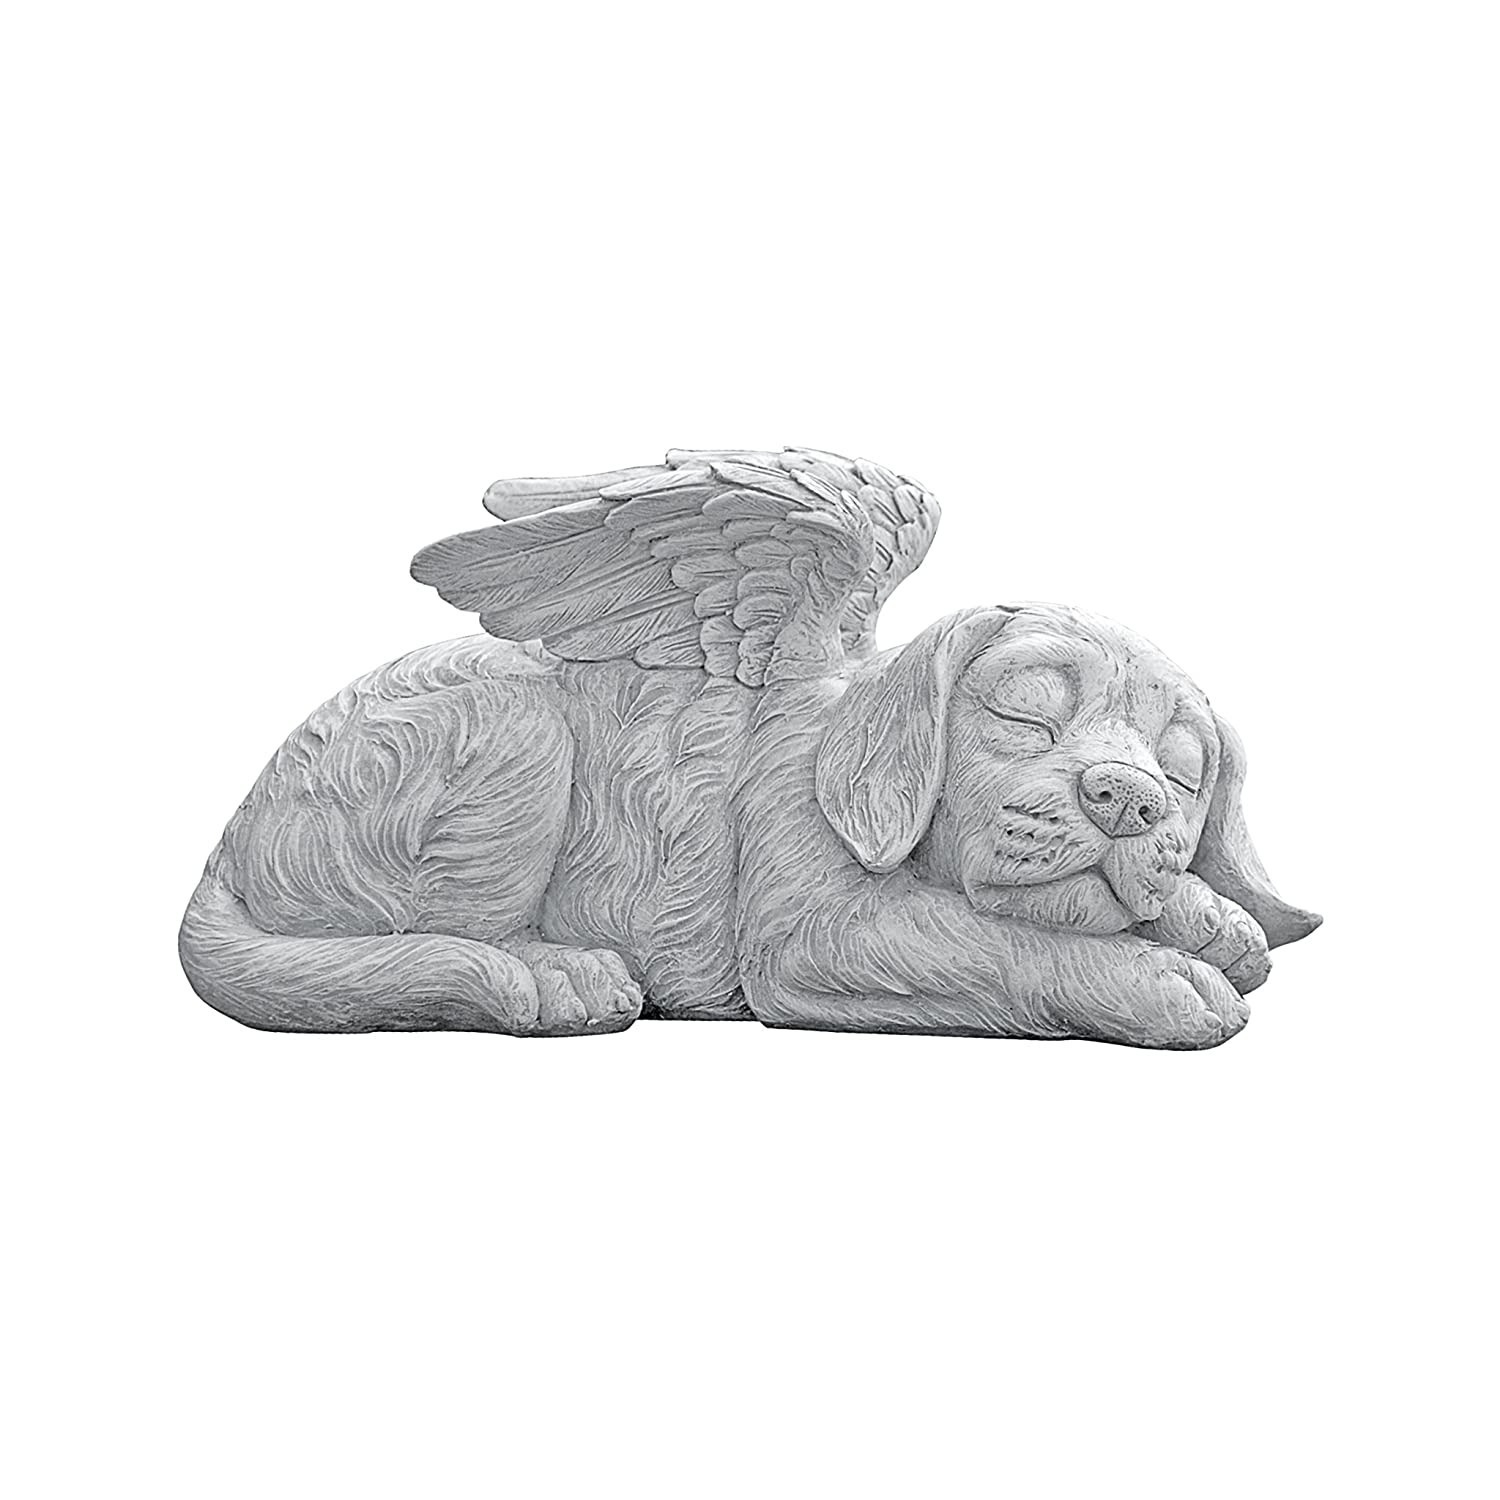 Design Toscano Dog Memorial Angel Pet Statue